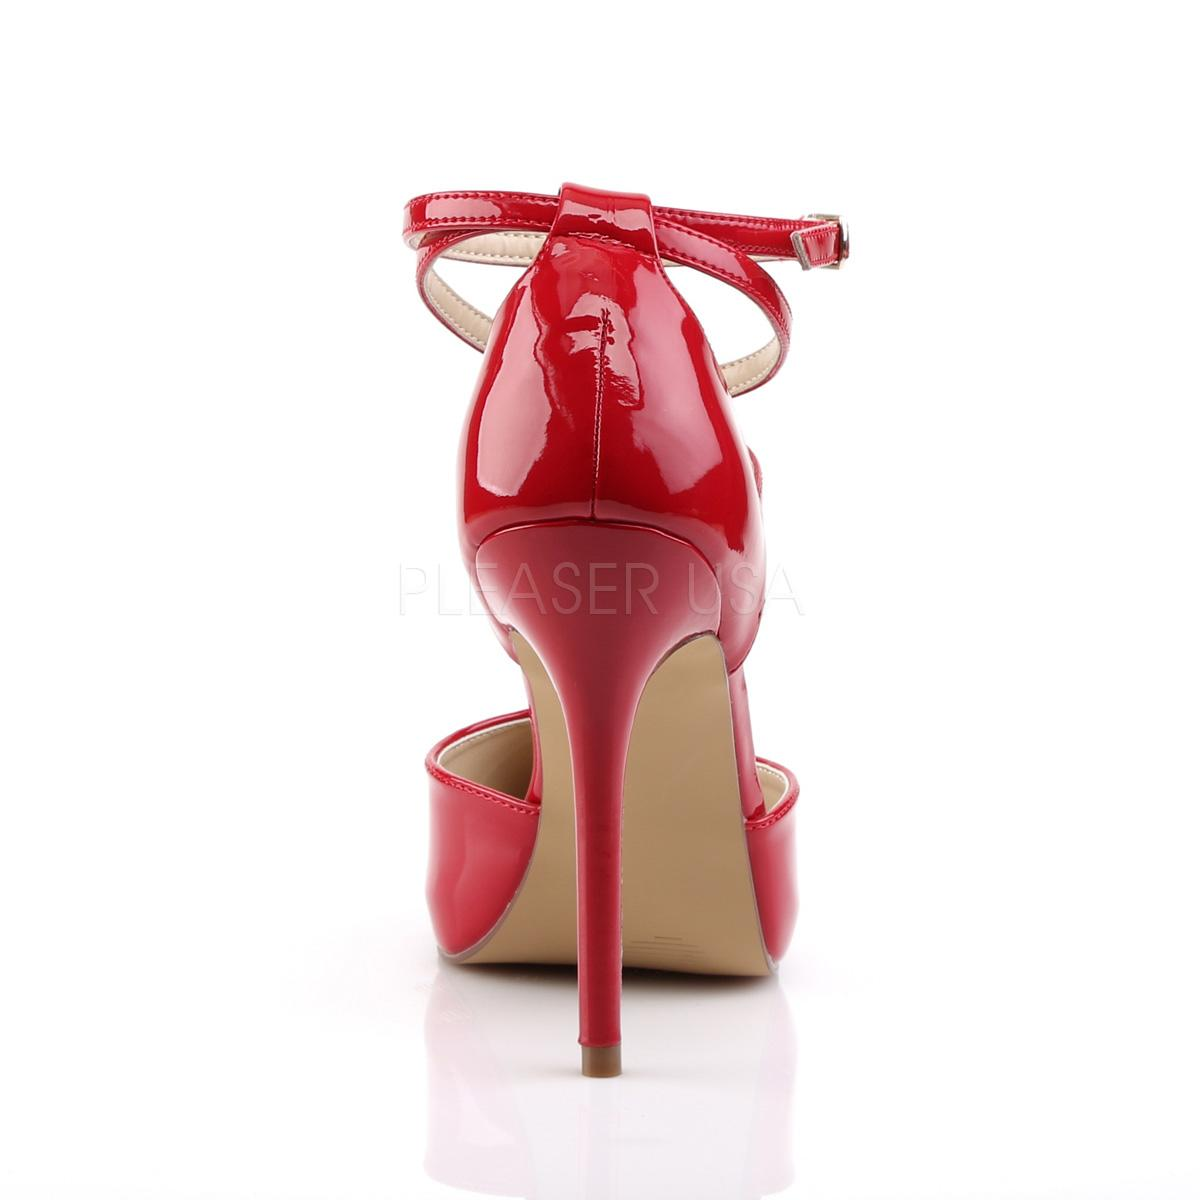 Red D'Orsay Shoe rear view